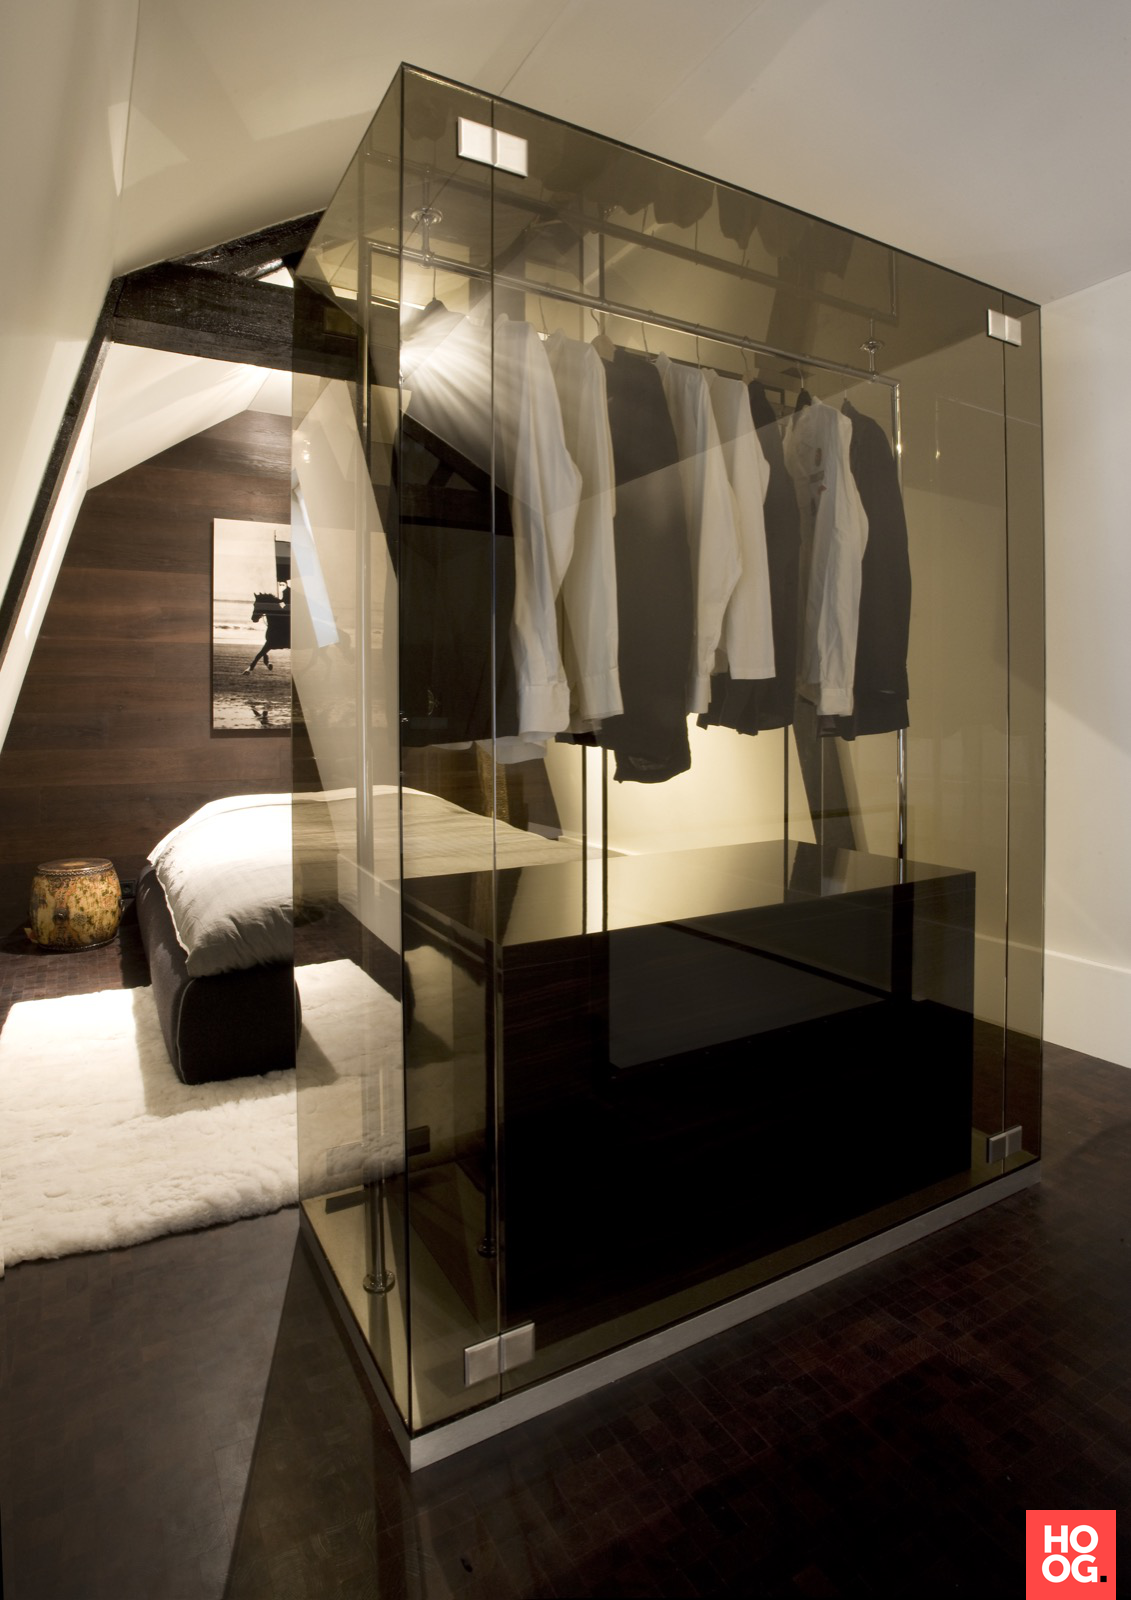 Loft bedroom with walk in wardrobe  Pin by Louisa Hung on Home decor  Pinterest  Bedrooms